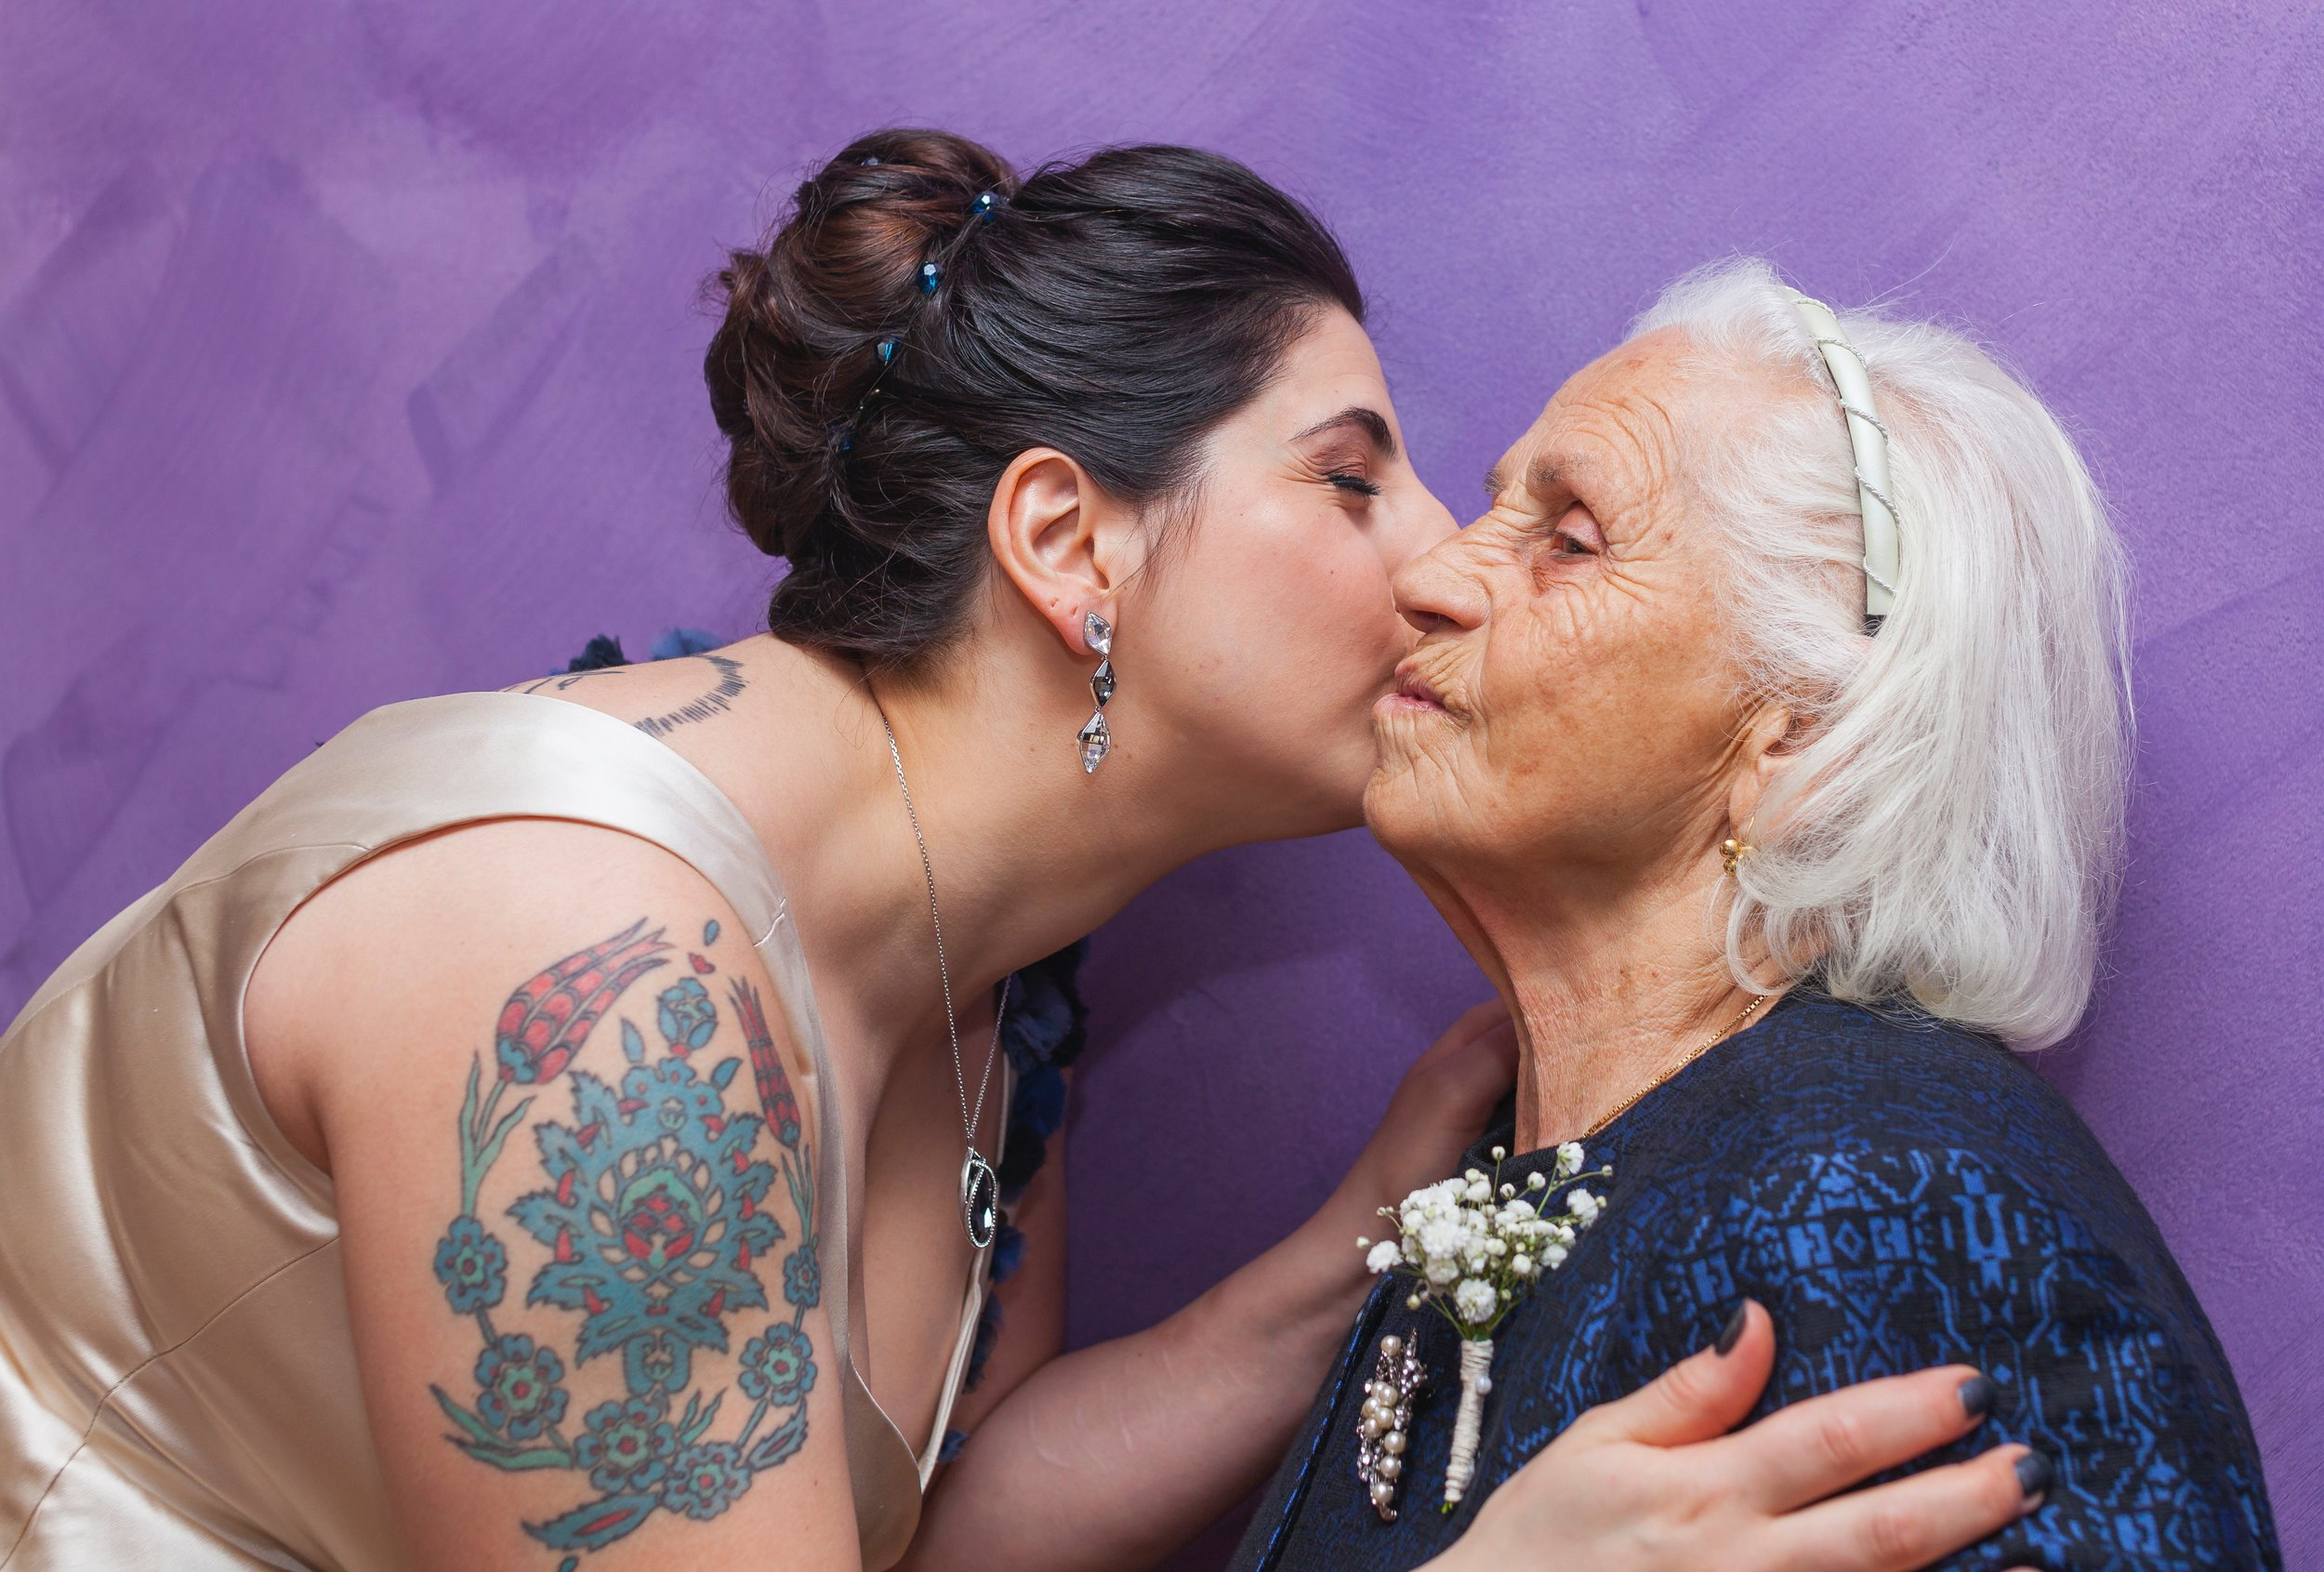 A daughter kisses the cheek of her older mother. With caregiver's best friend you can spend less time on chores and more time enjoying the company of your loved one.